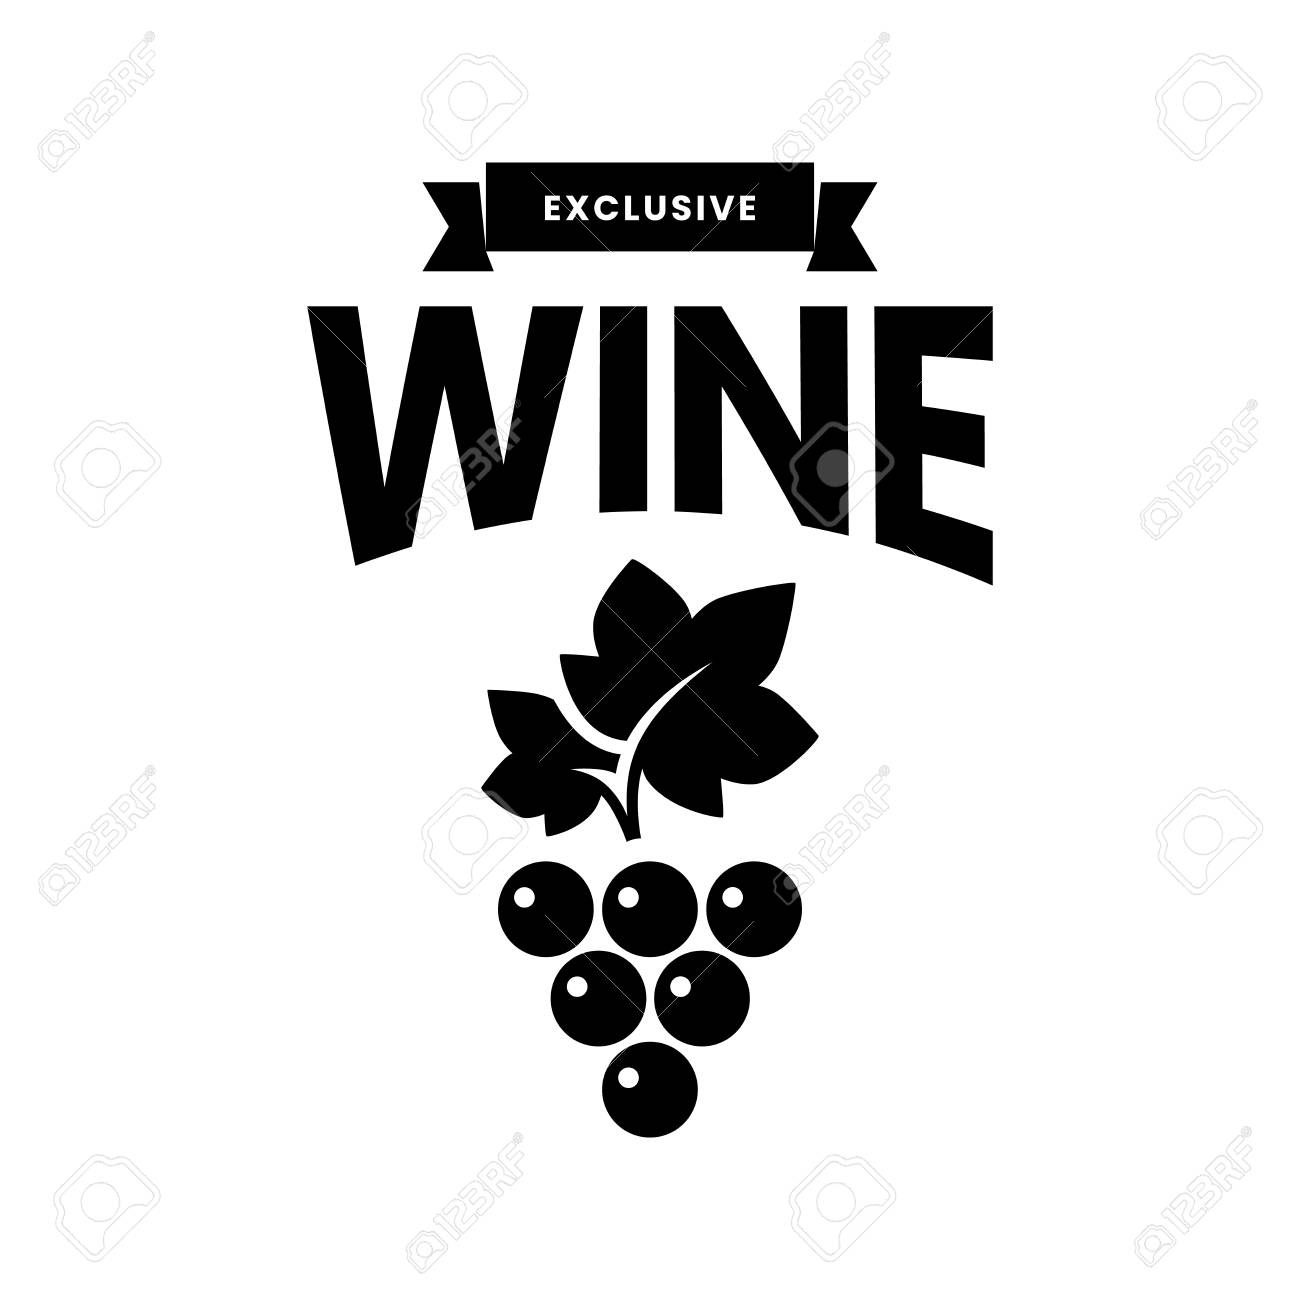 Modern wine vector logo sign for tavern, restaurant, house, shop, store, club and cellar isolated on white background. Premium quality vinery logotype illustration. Fashion brand badge design template. - 126498892